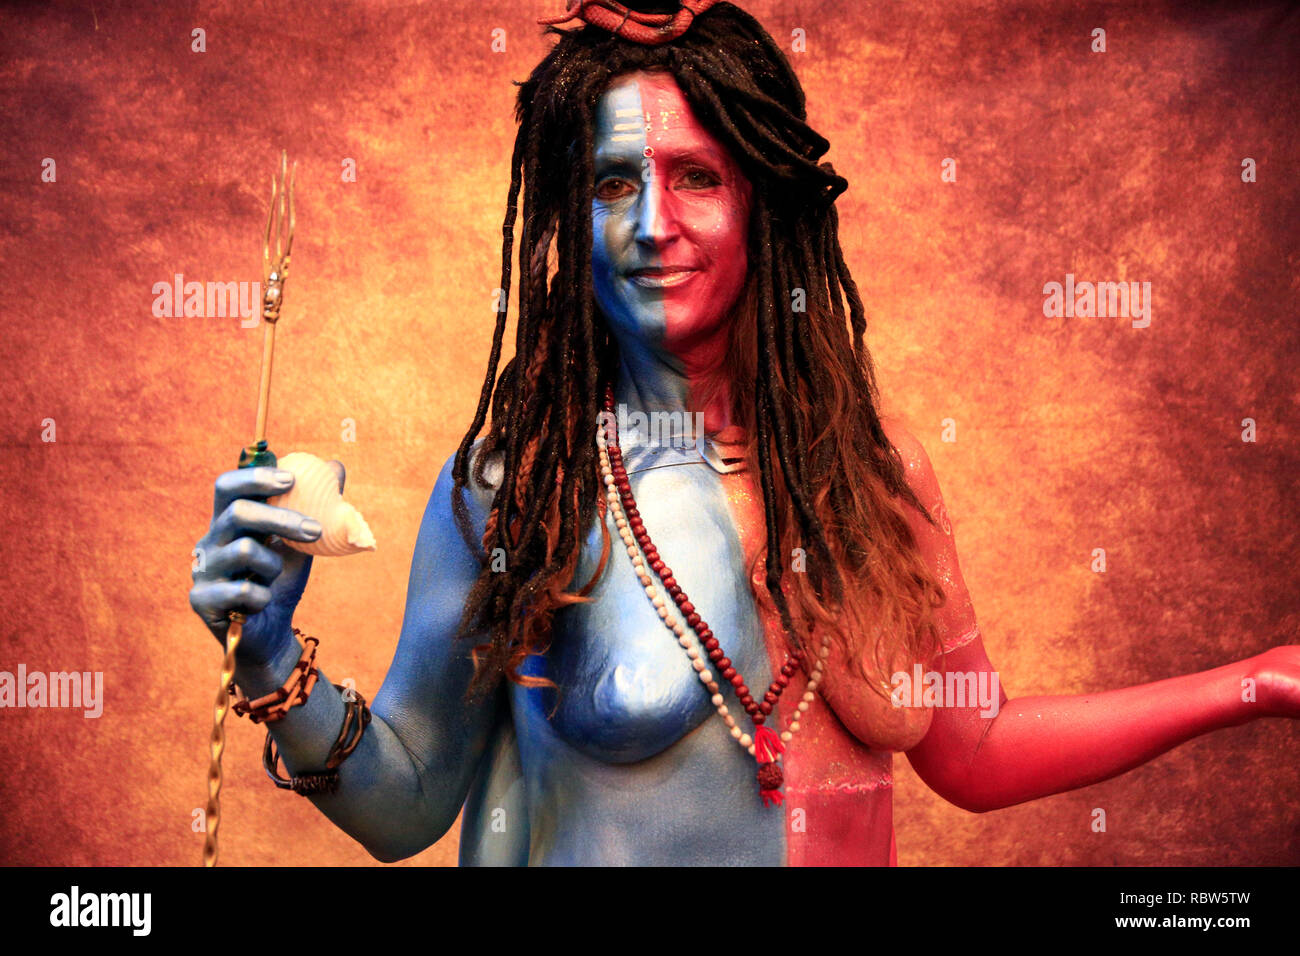 Body Art Festival High Resolution Stock Photography And Images Alamy